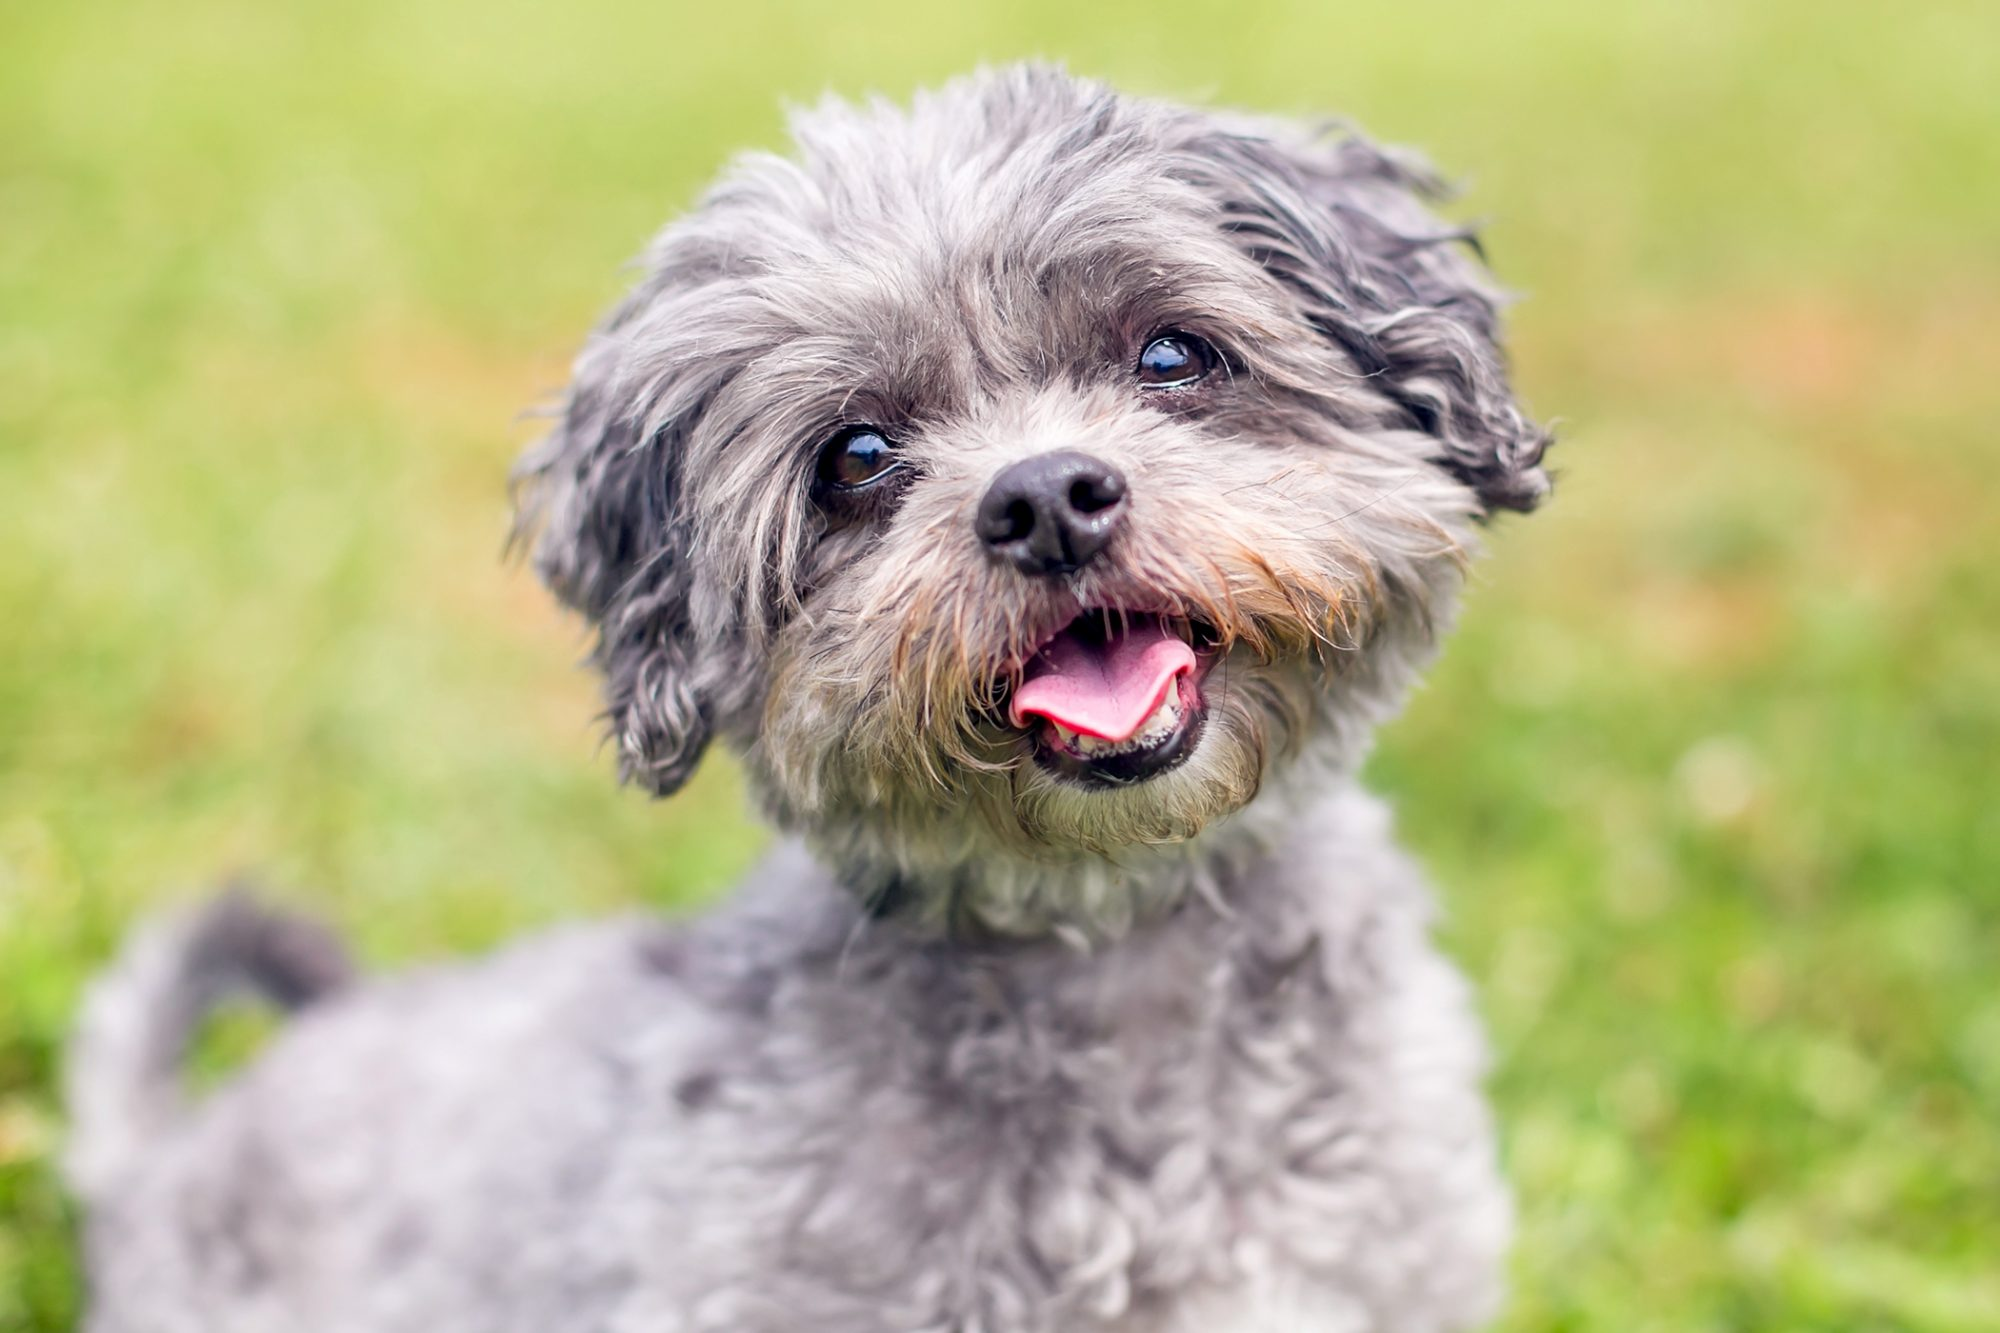 Grey curly shih-poo puppy happily sits outdoors